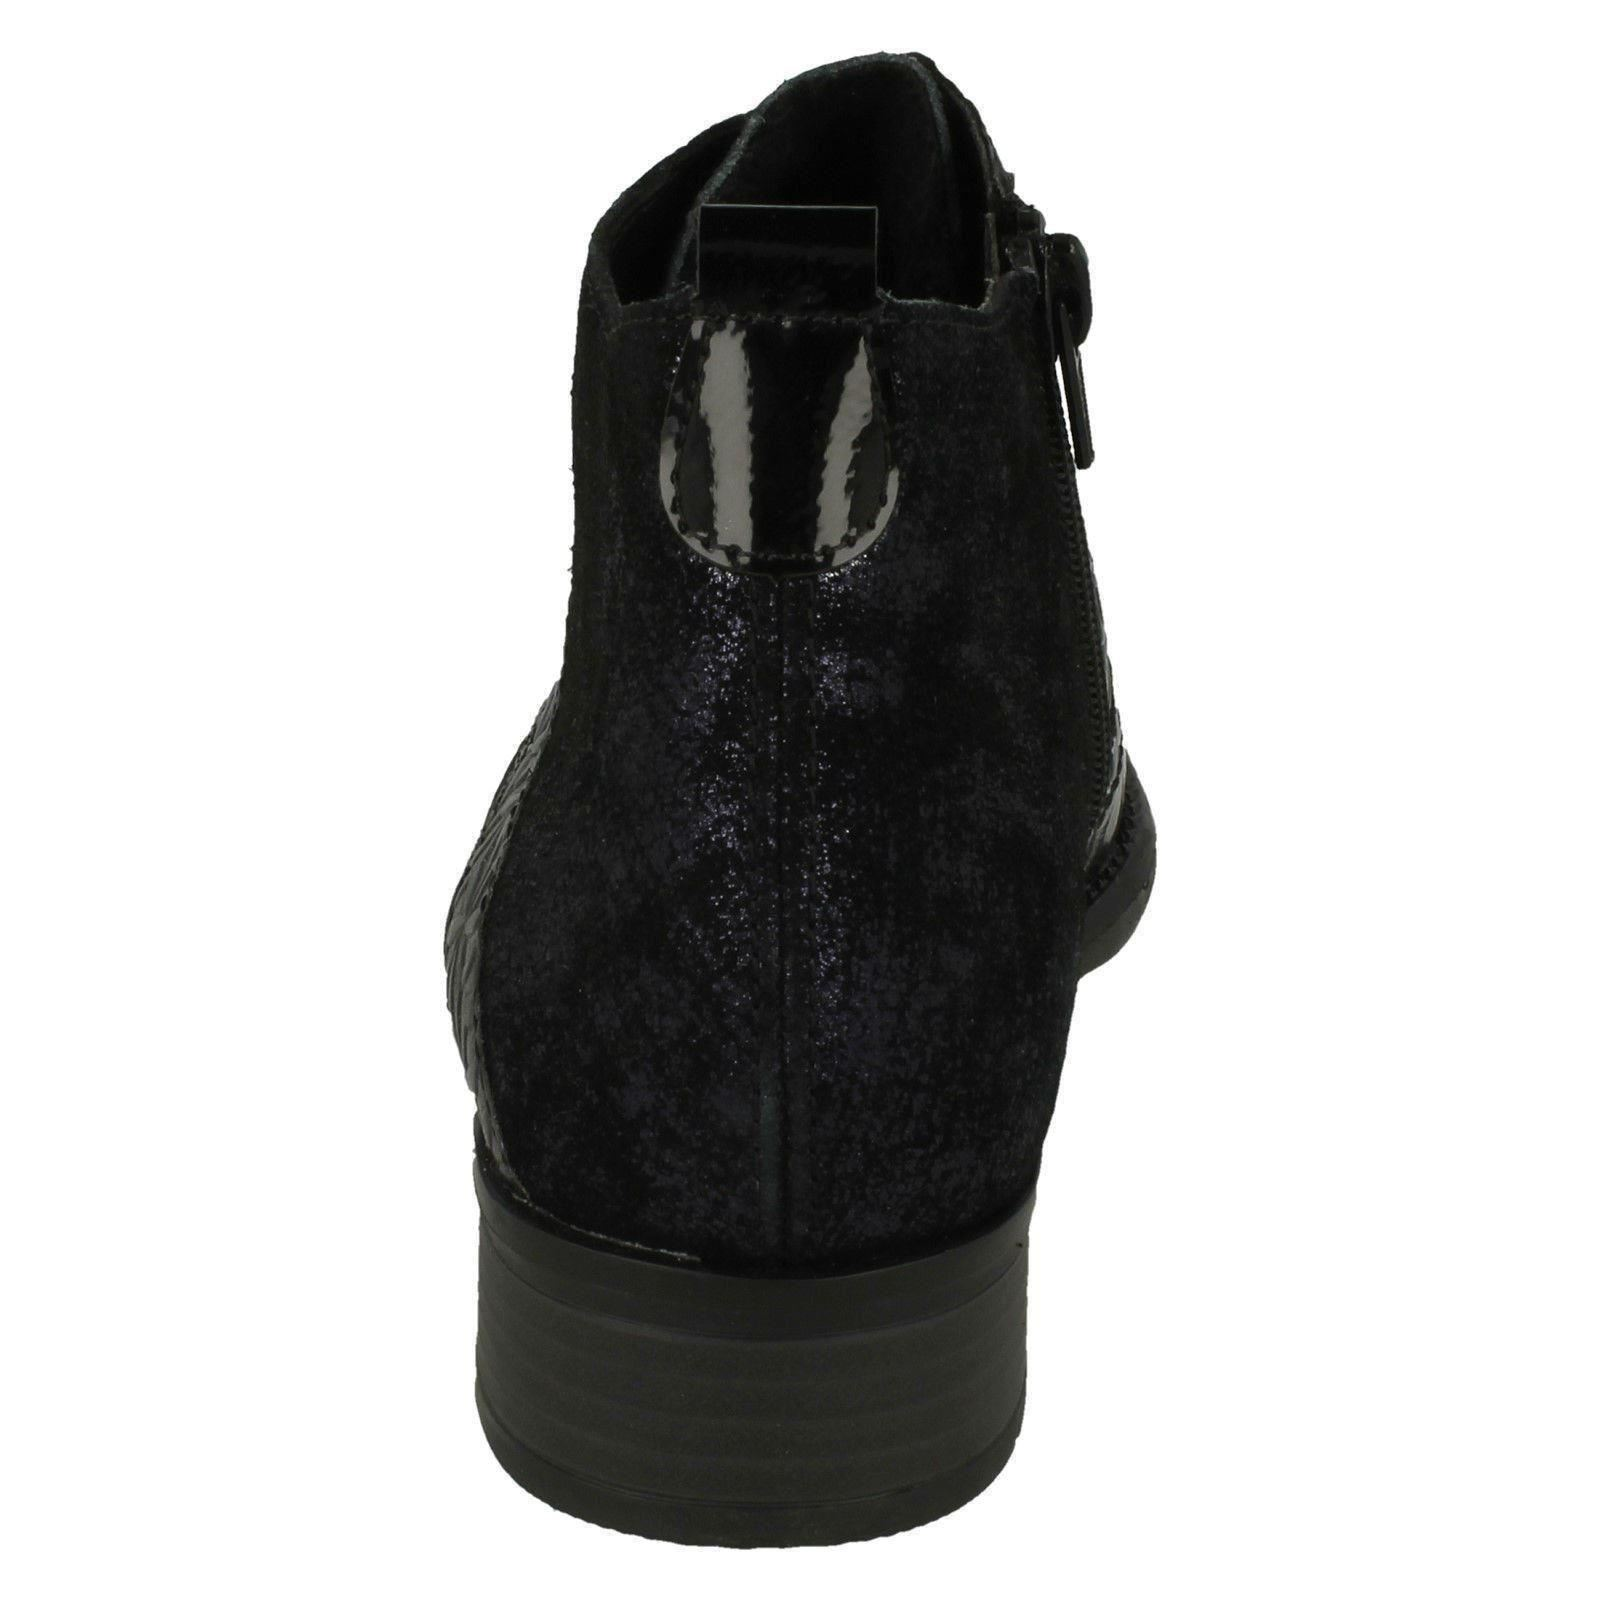 Ladies Remonte Remonte Remonte Stylish Fleece Lining Ankle Boots R6446 37d0a8